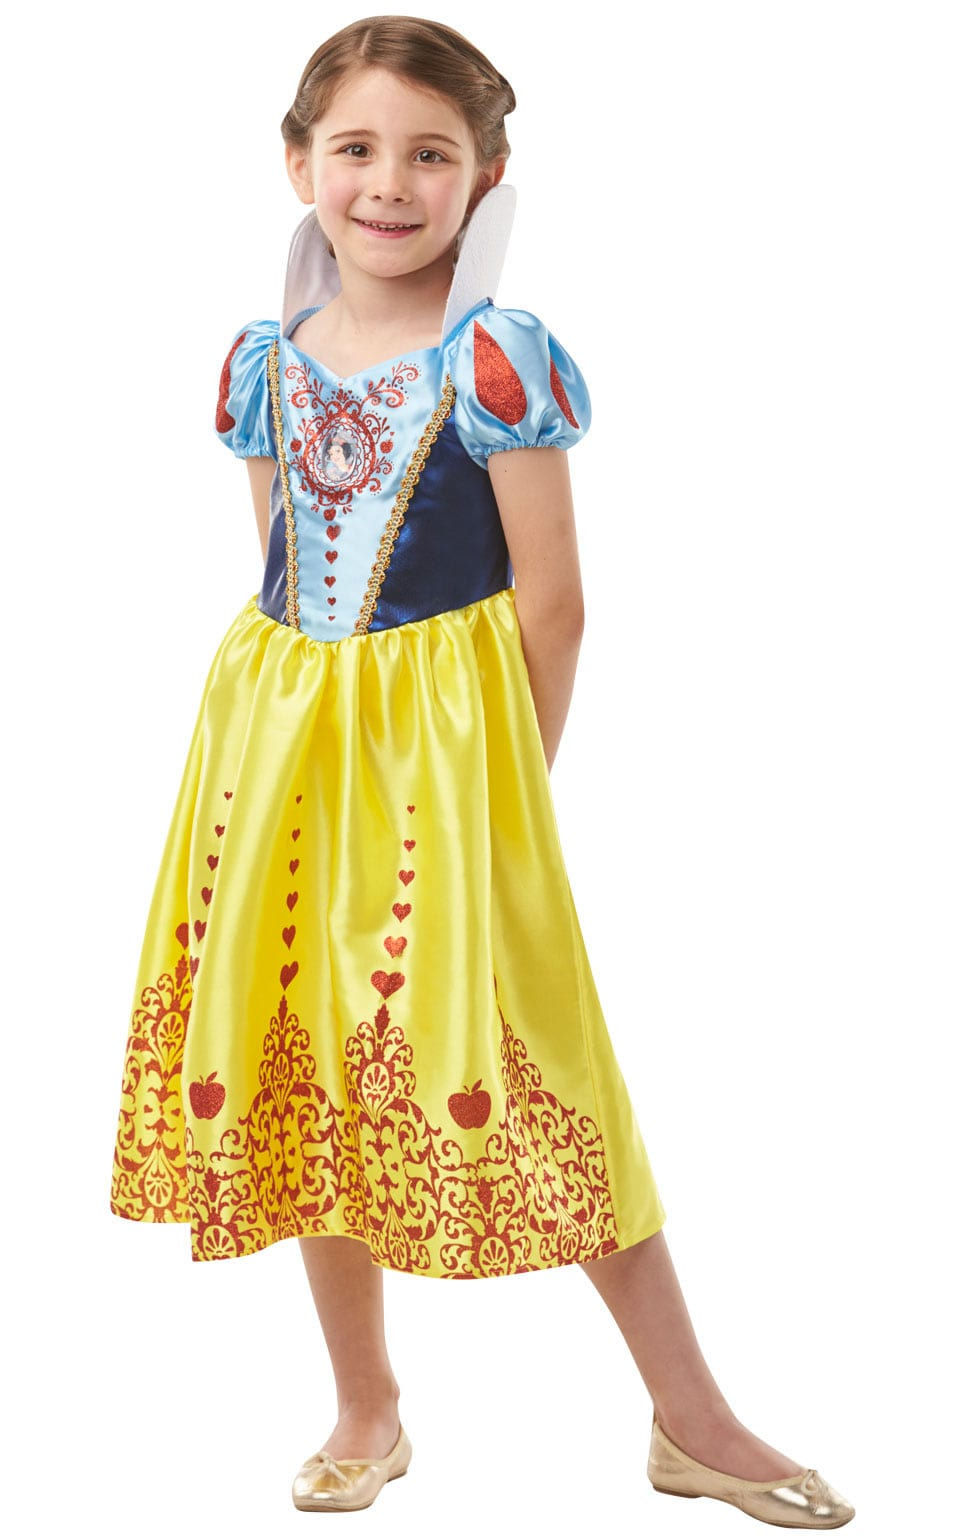 Disney Princess Gem Princess Snow White Children's Fancy Dress Costume